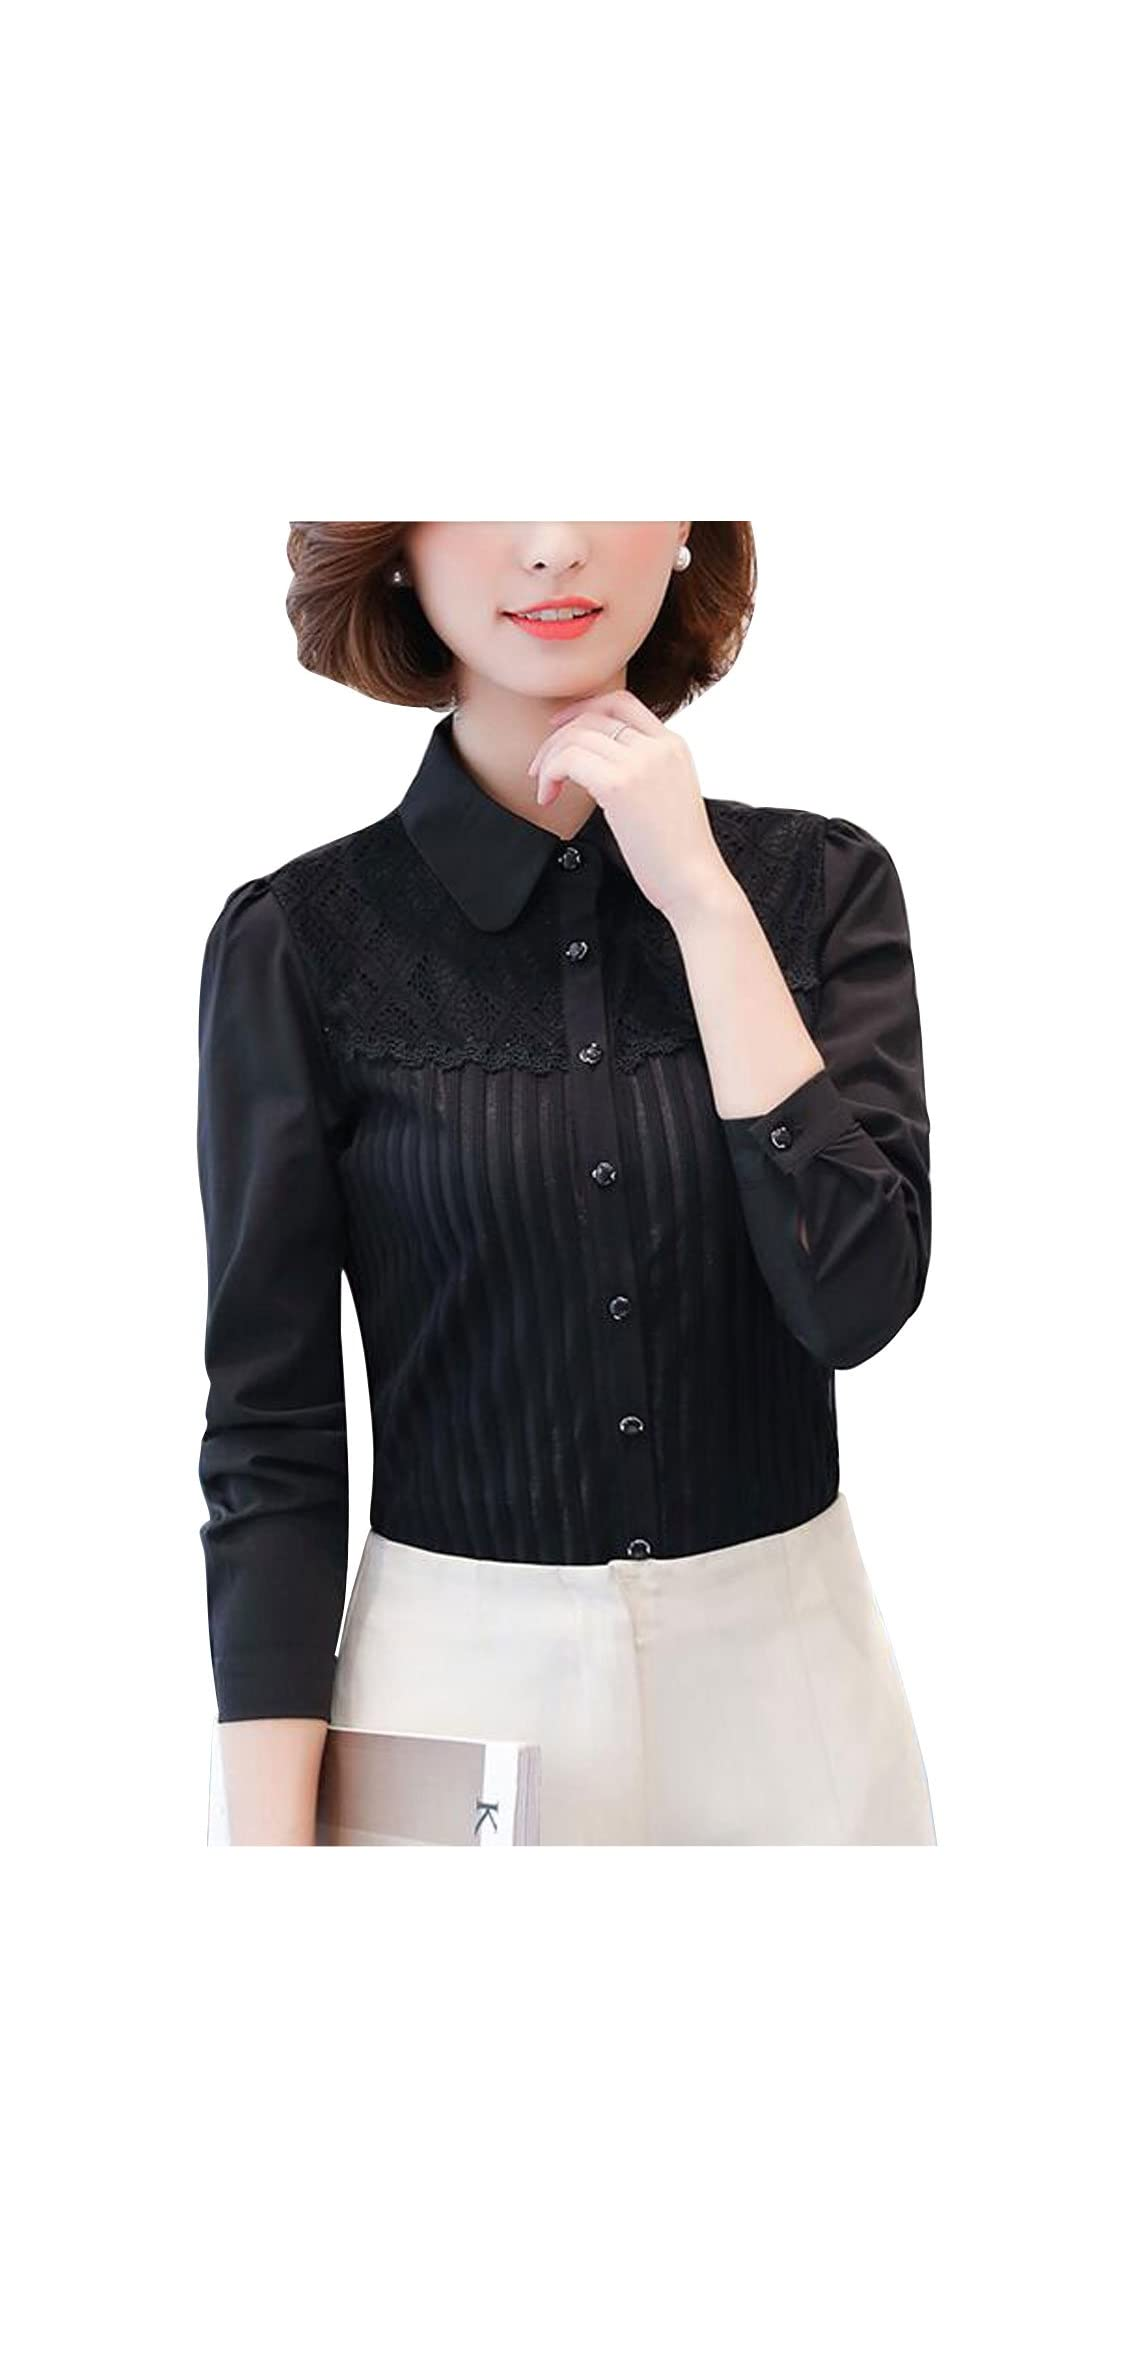 Dpo Women's Vintage Collared Pleated Button Down Shirt Long Lace